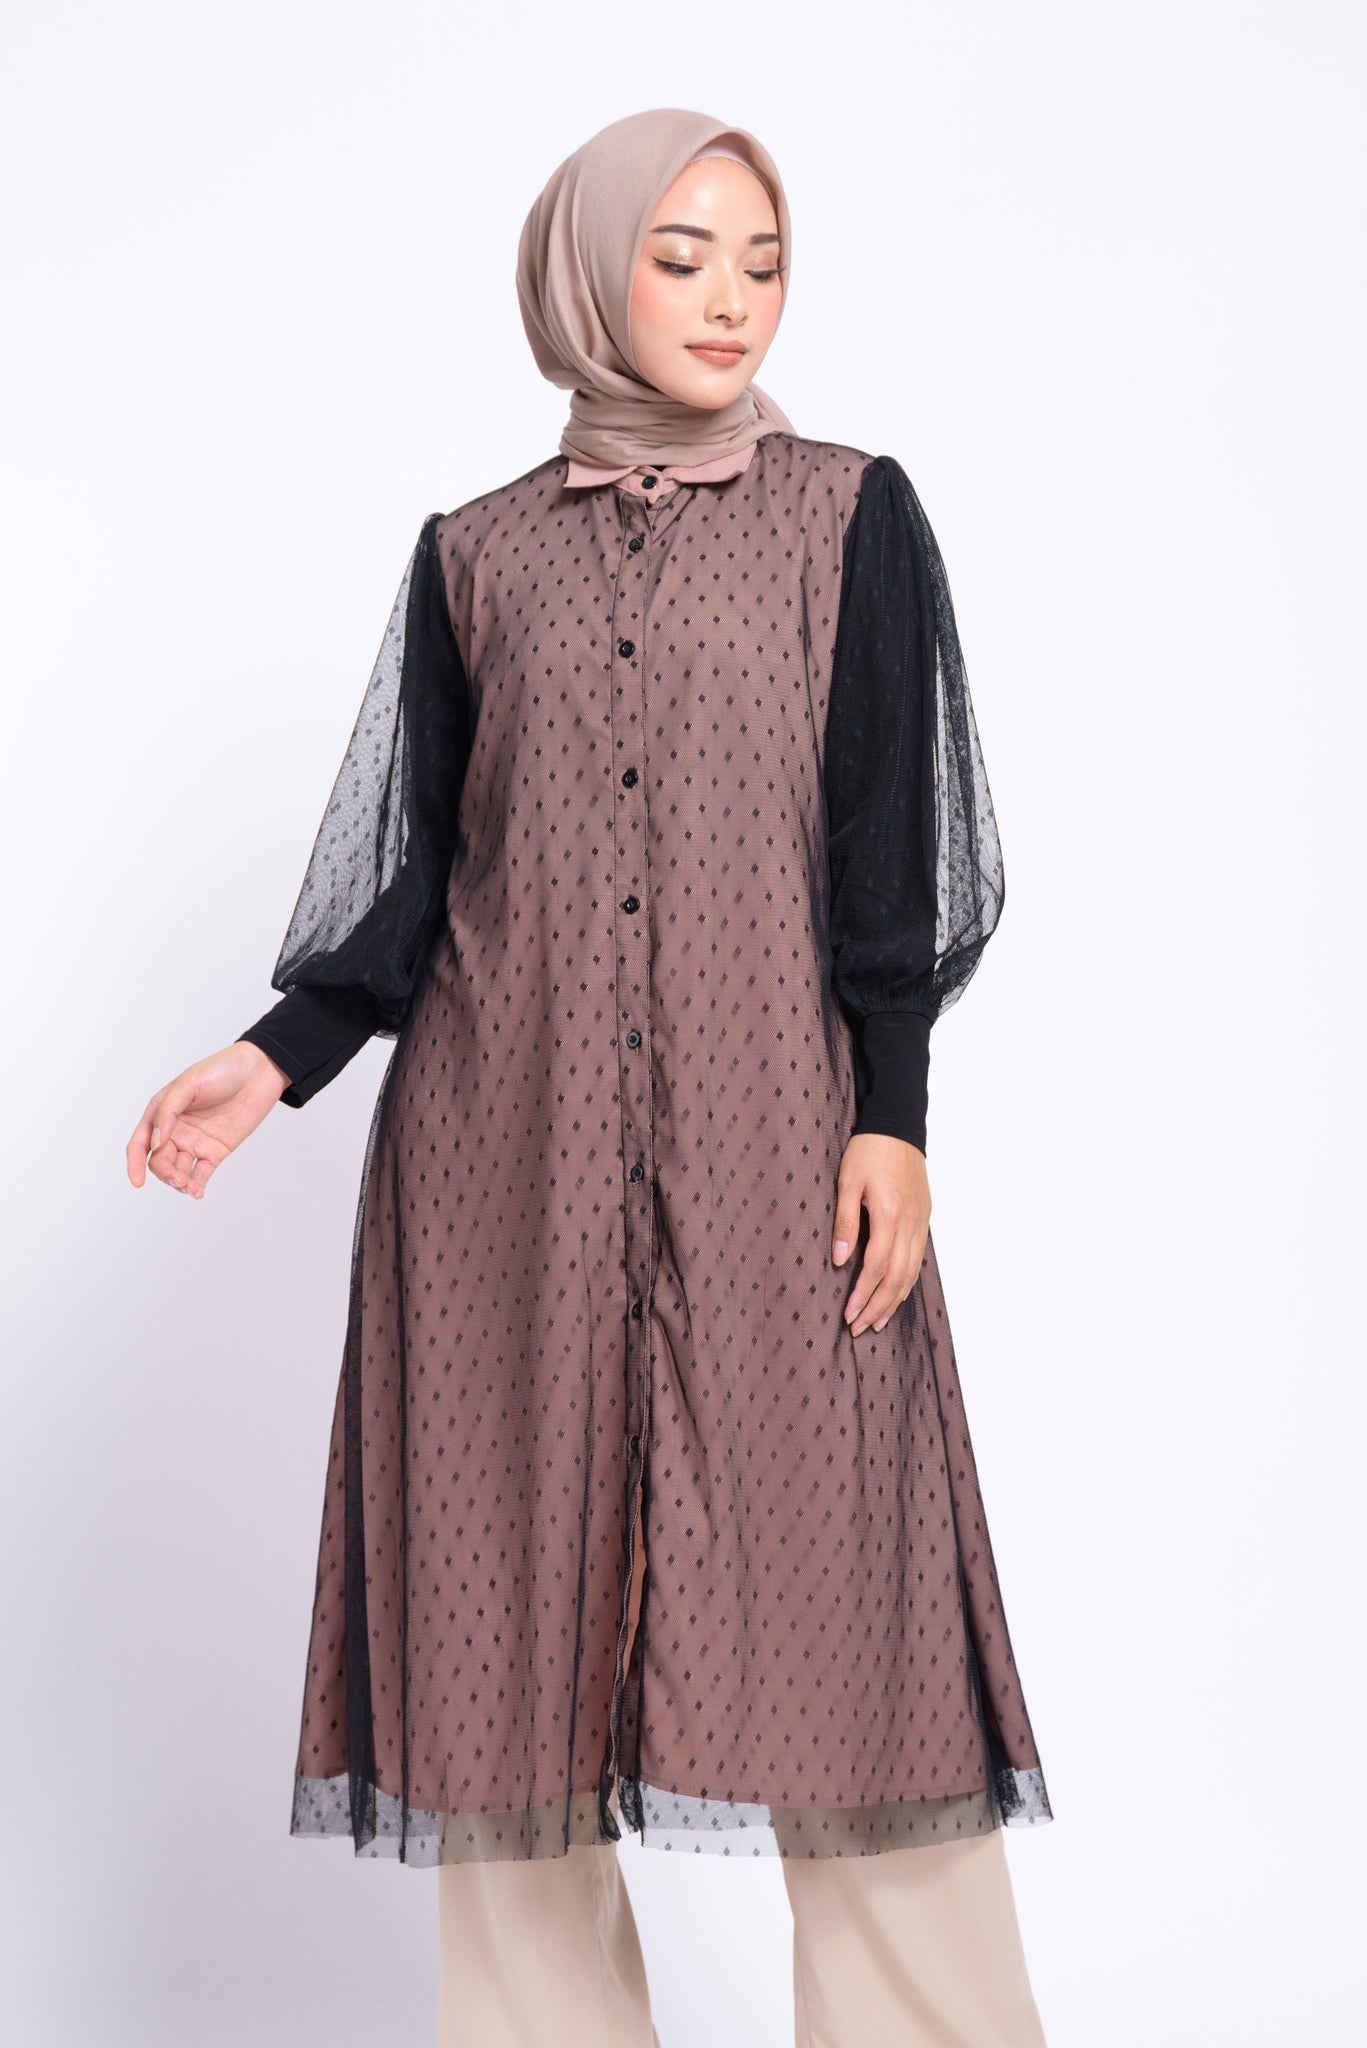 BIA by Zaskia Mecca - Oshea Dusty Pink Black Tunik